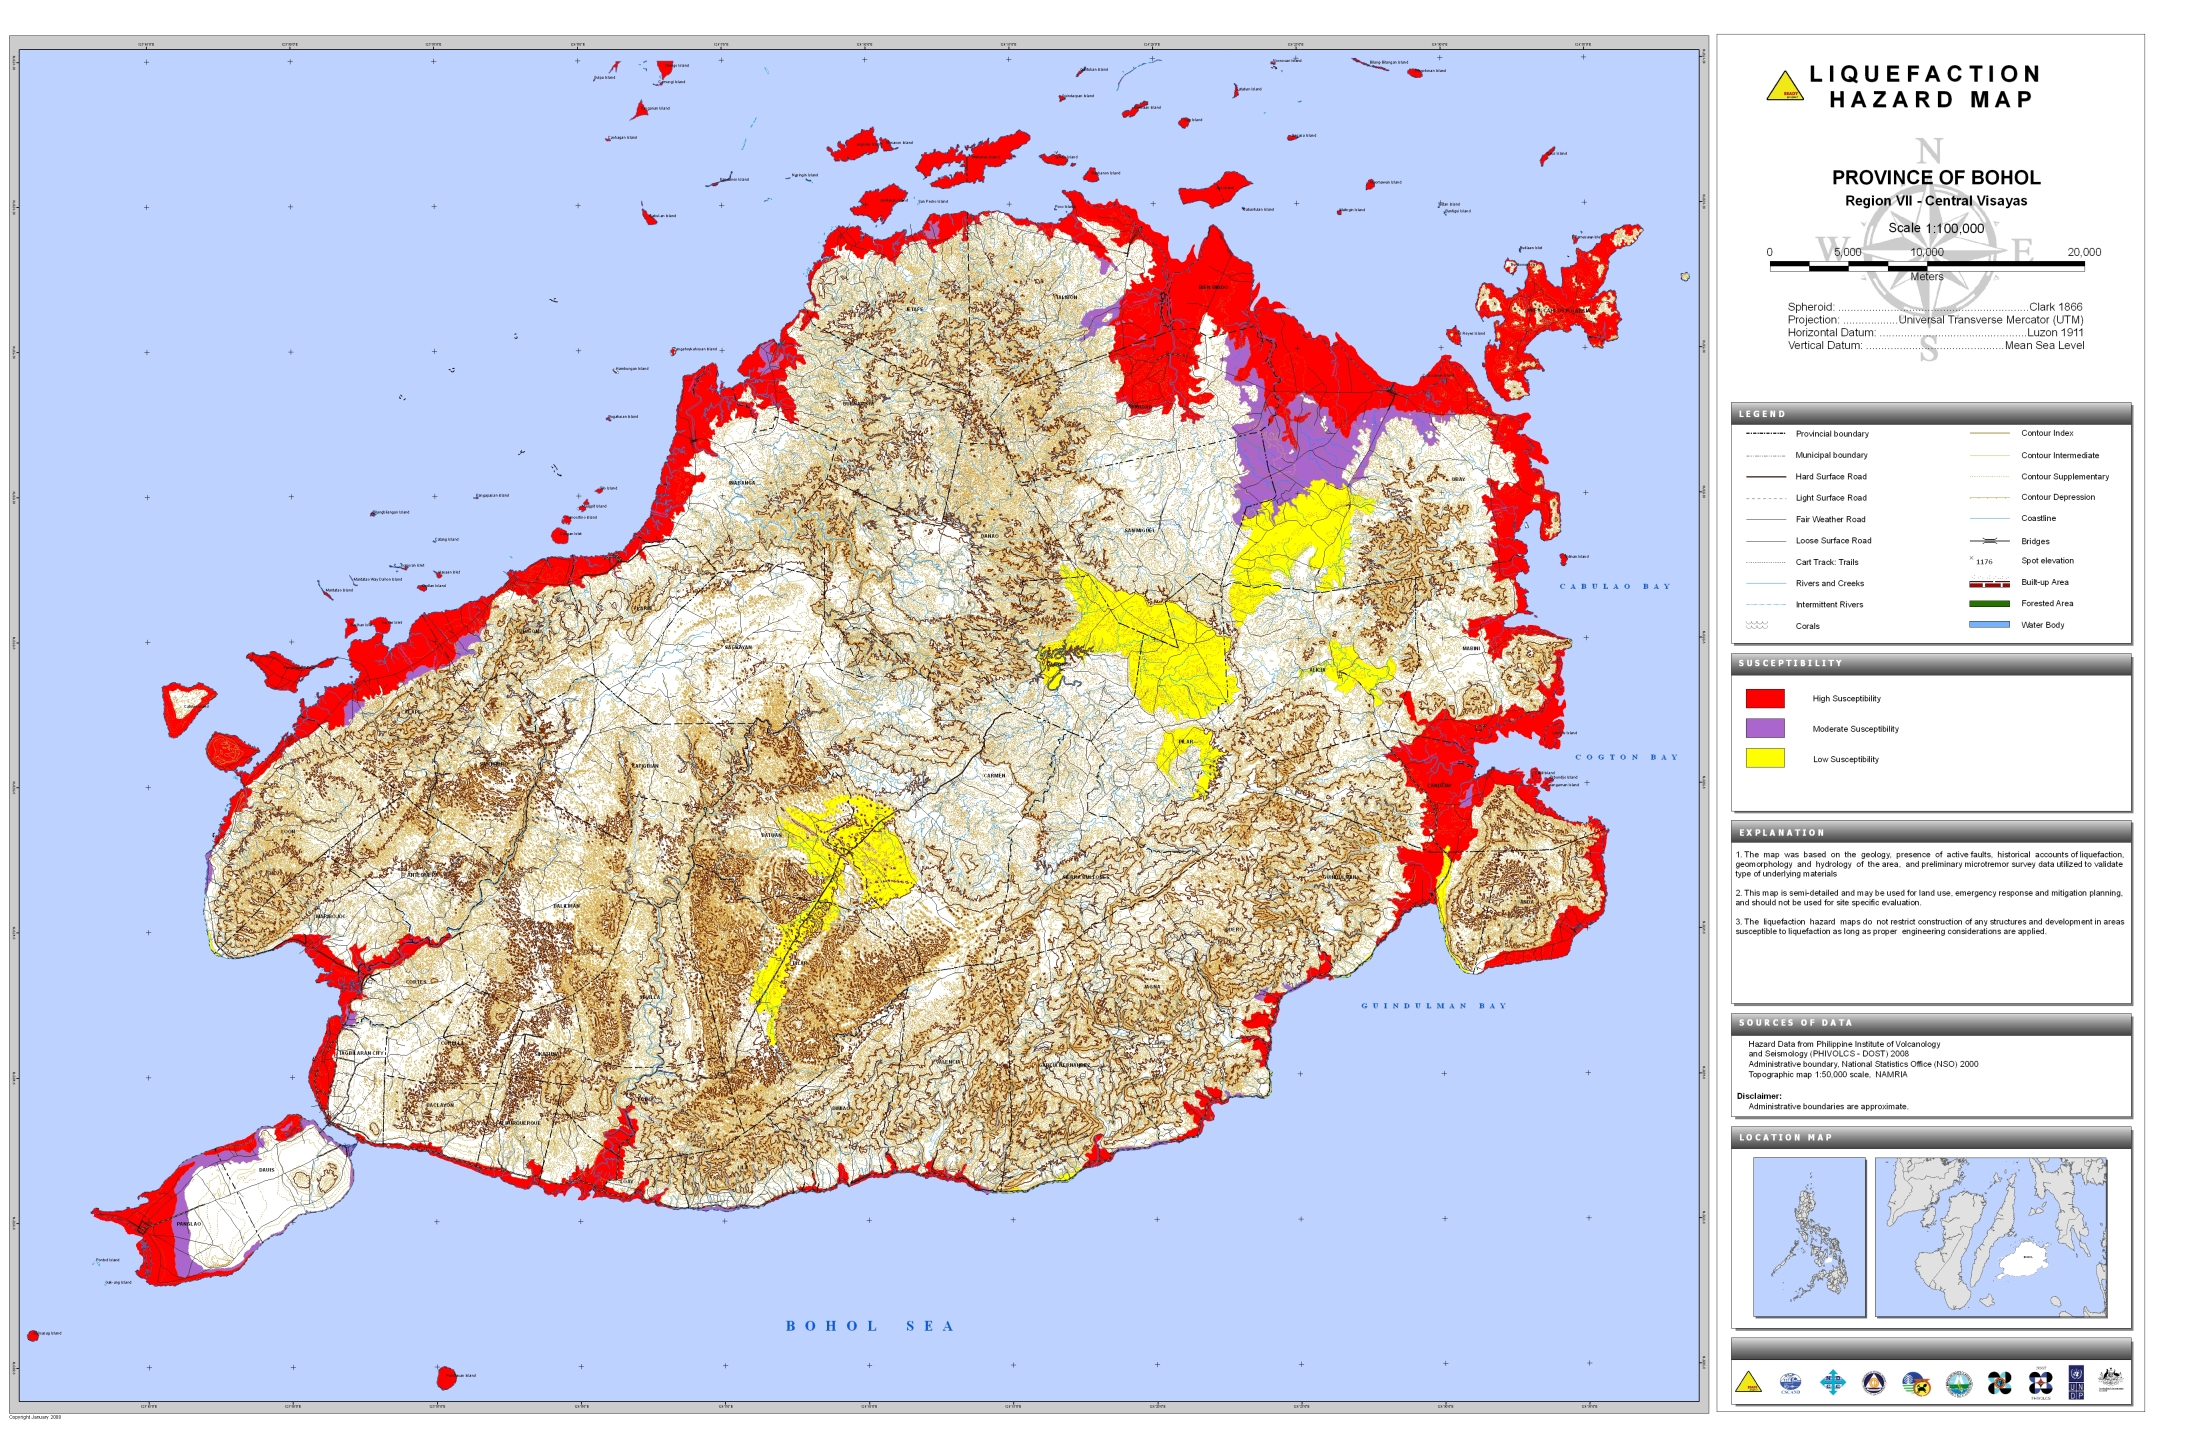 Bohol Liquefaction Hazard Map